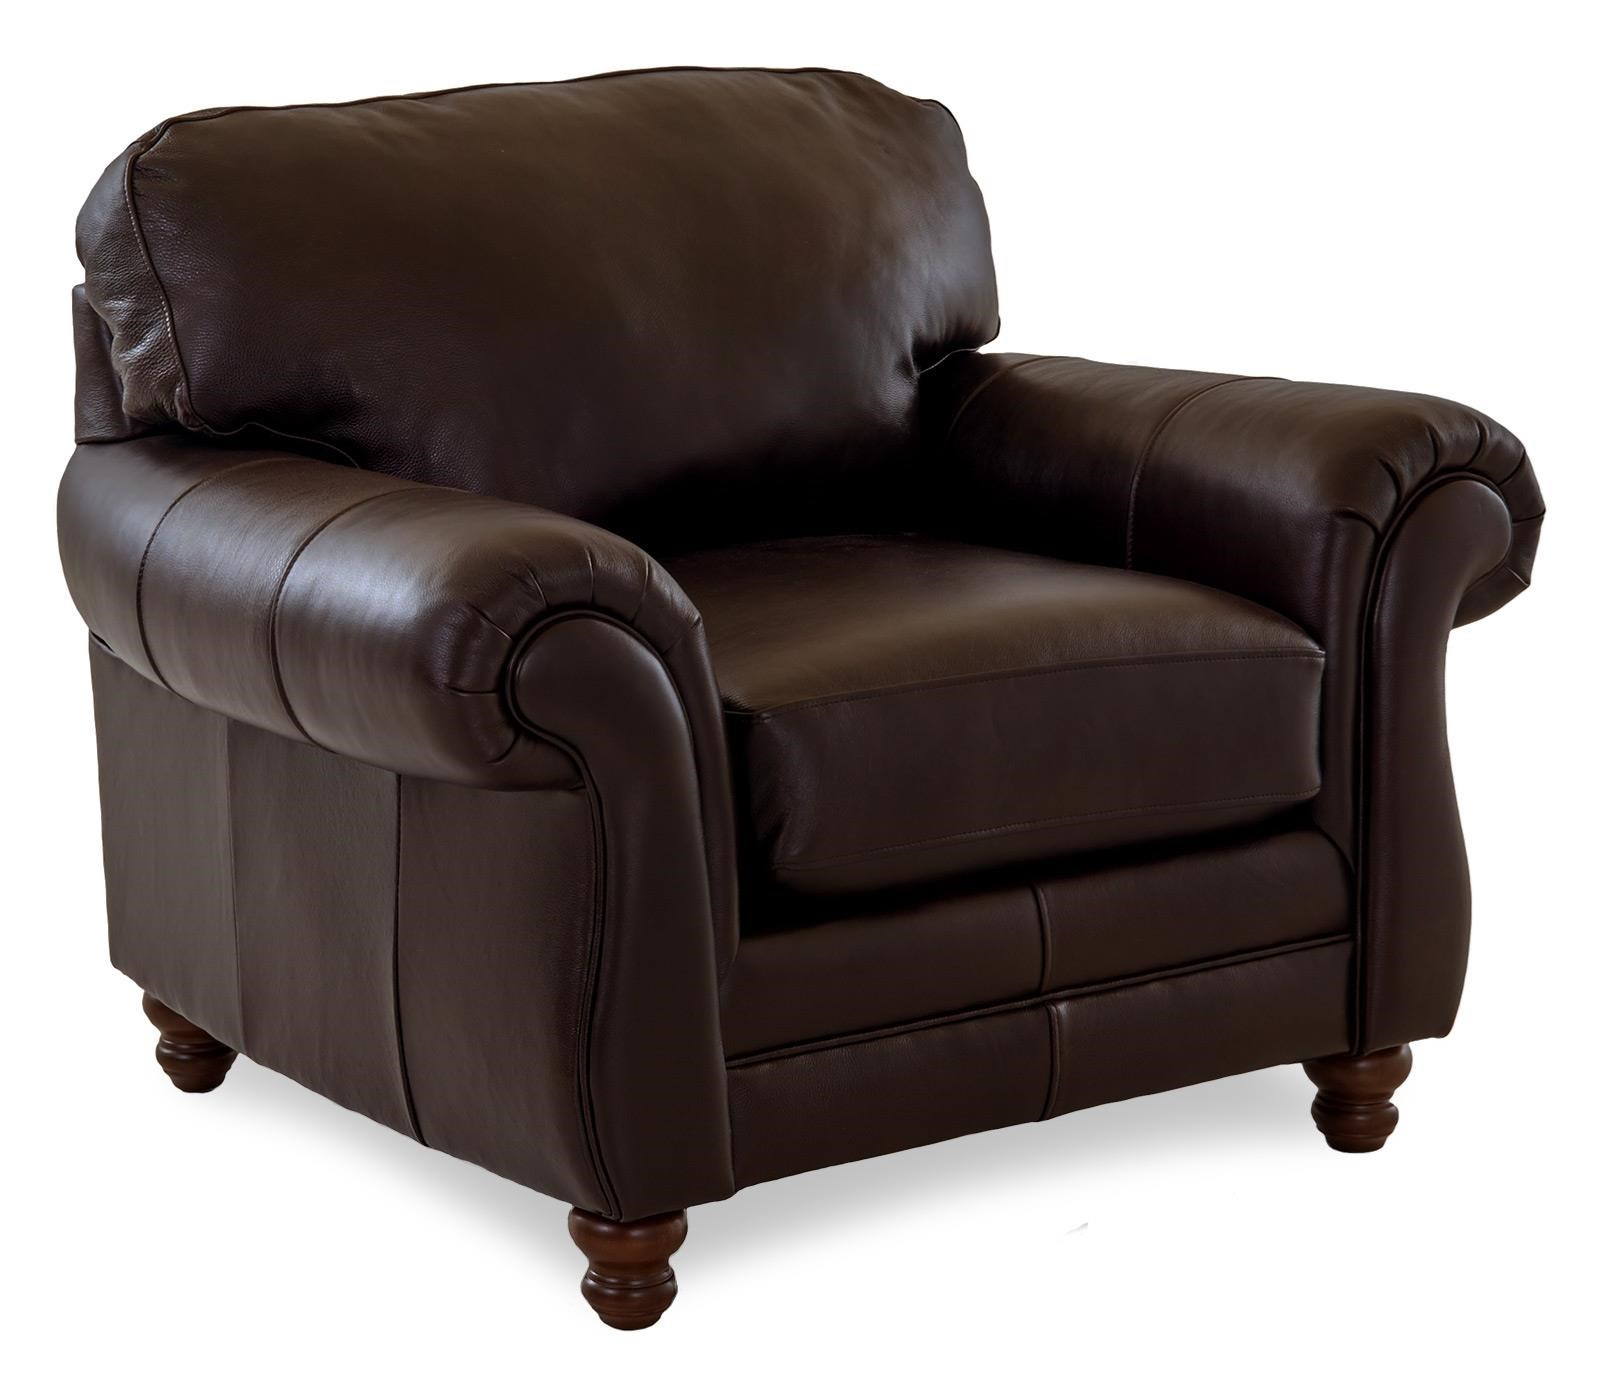 Leather Roll Arm Chair